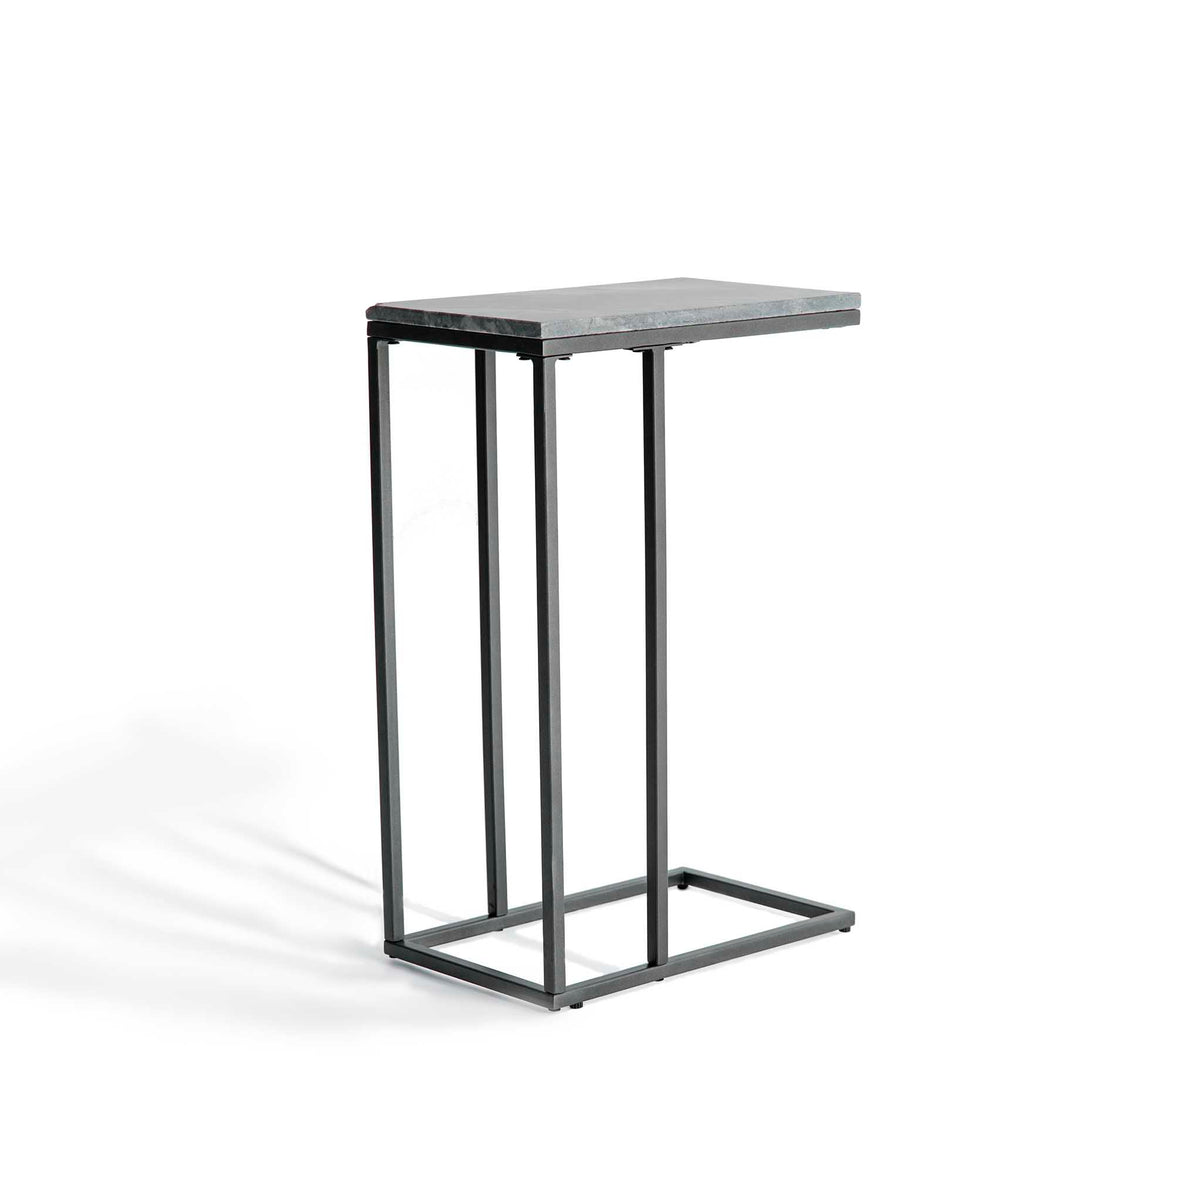 end view of the Kandla Grey Marble Side Table with Grey Base